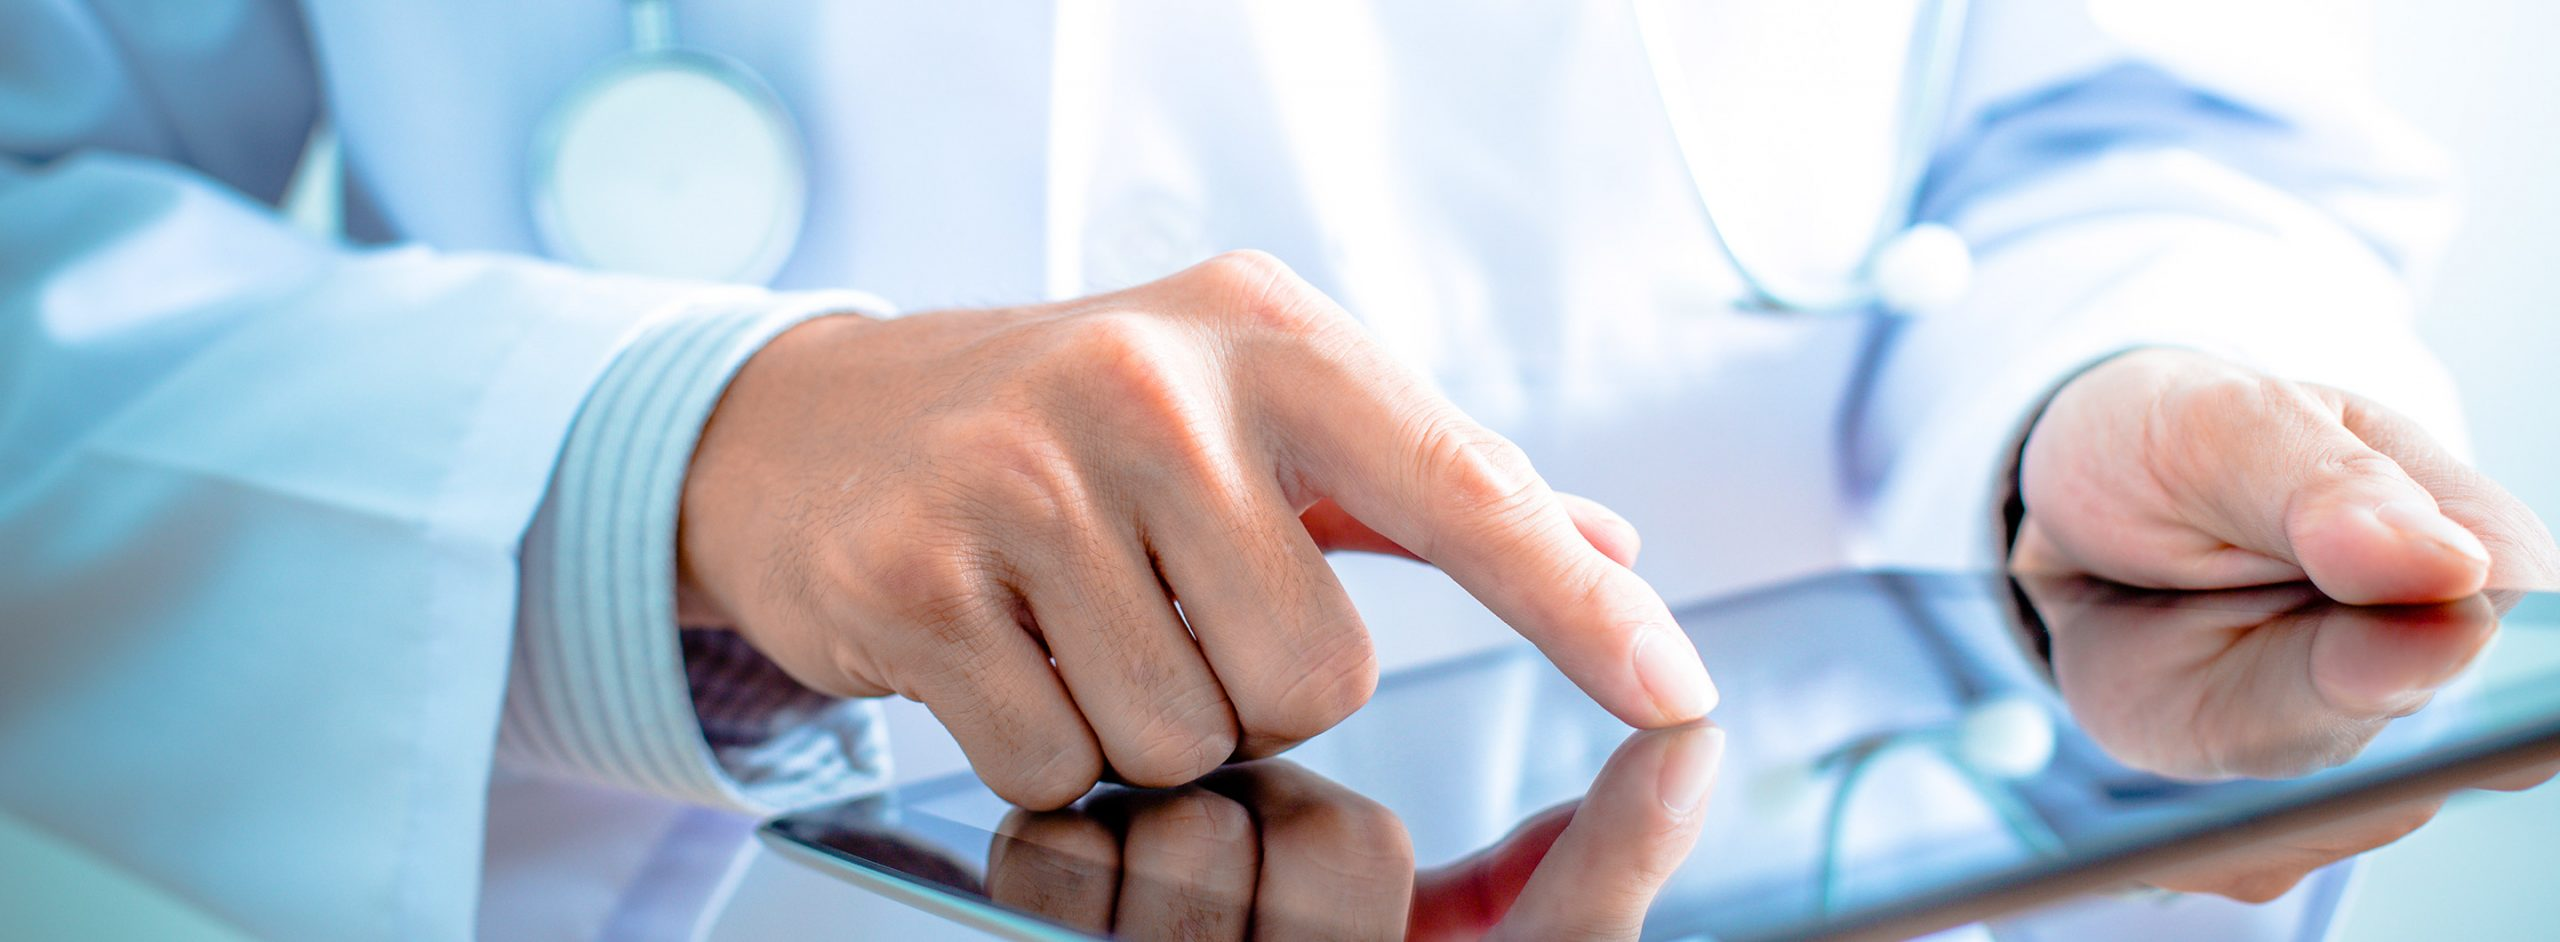 Digital Twins in Healthcare: Enabling mass personalization of care delivery